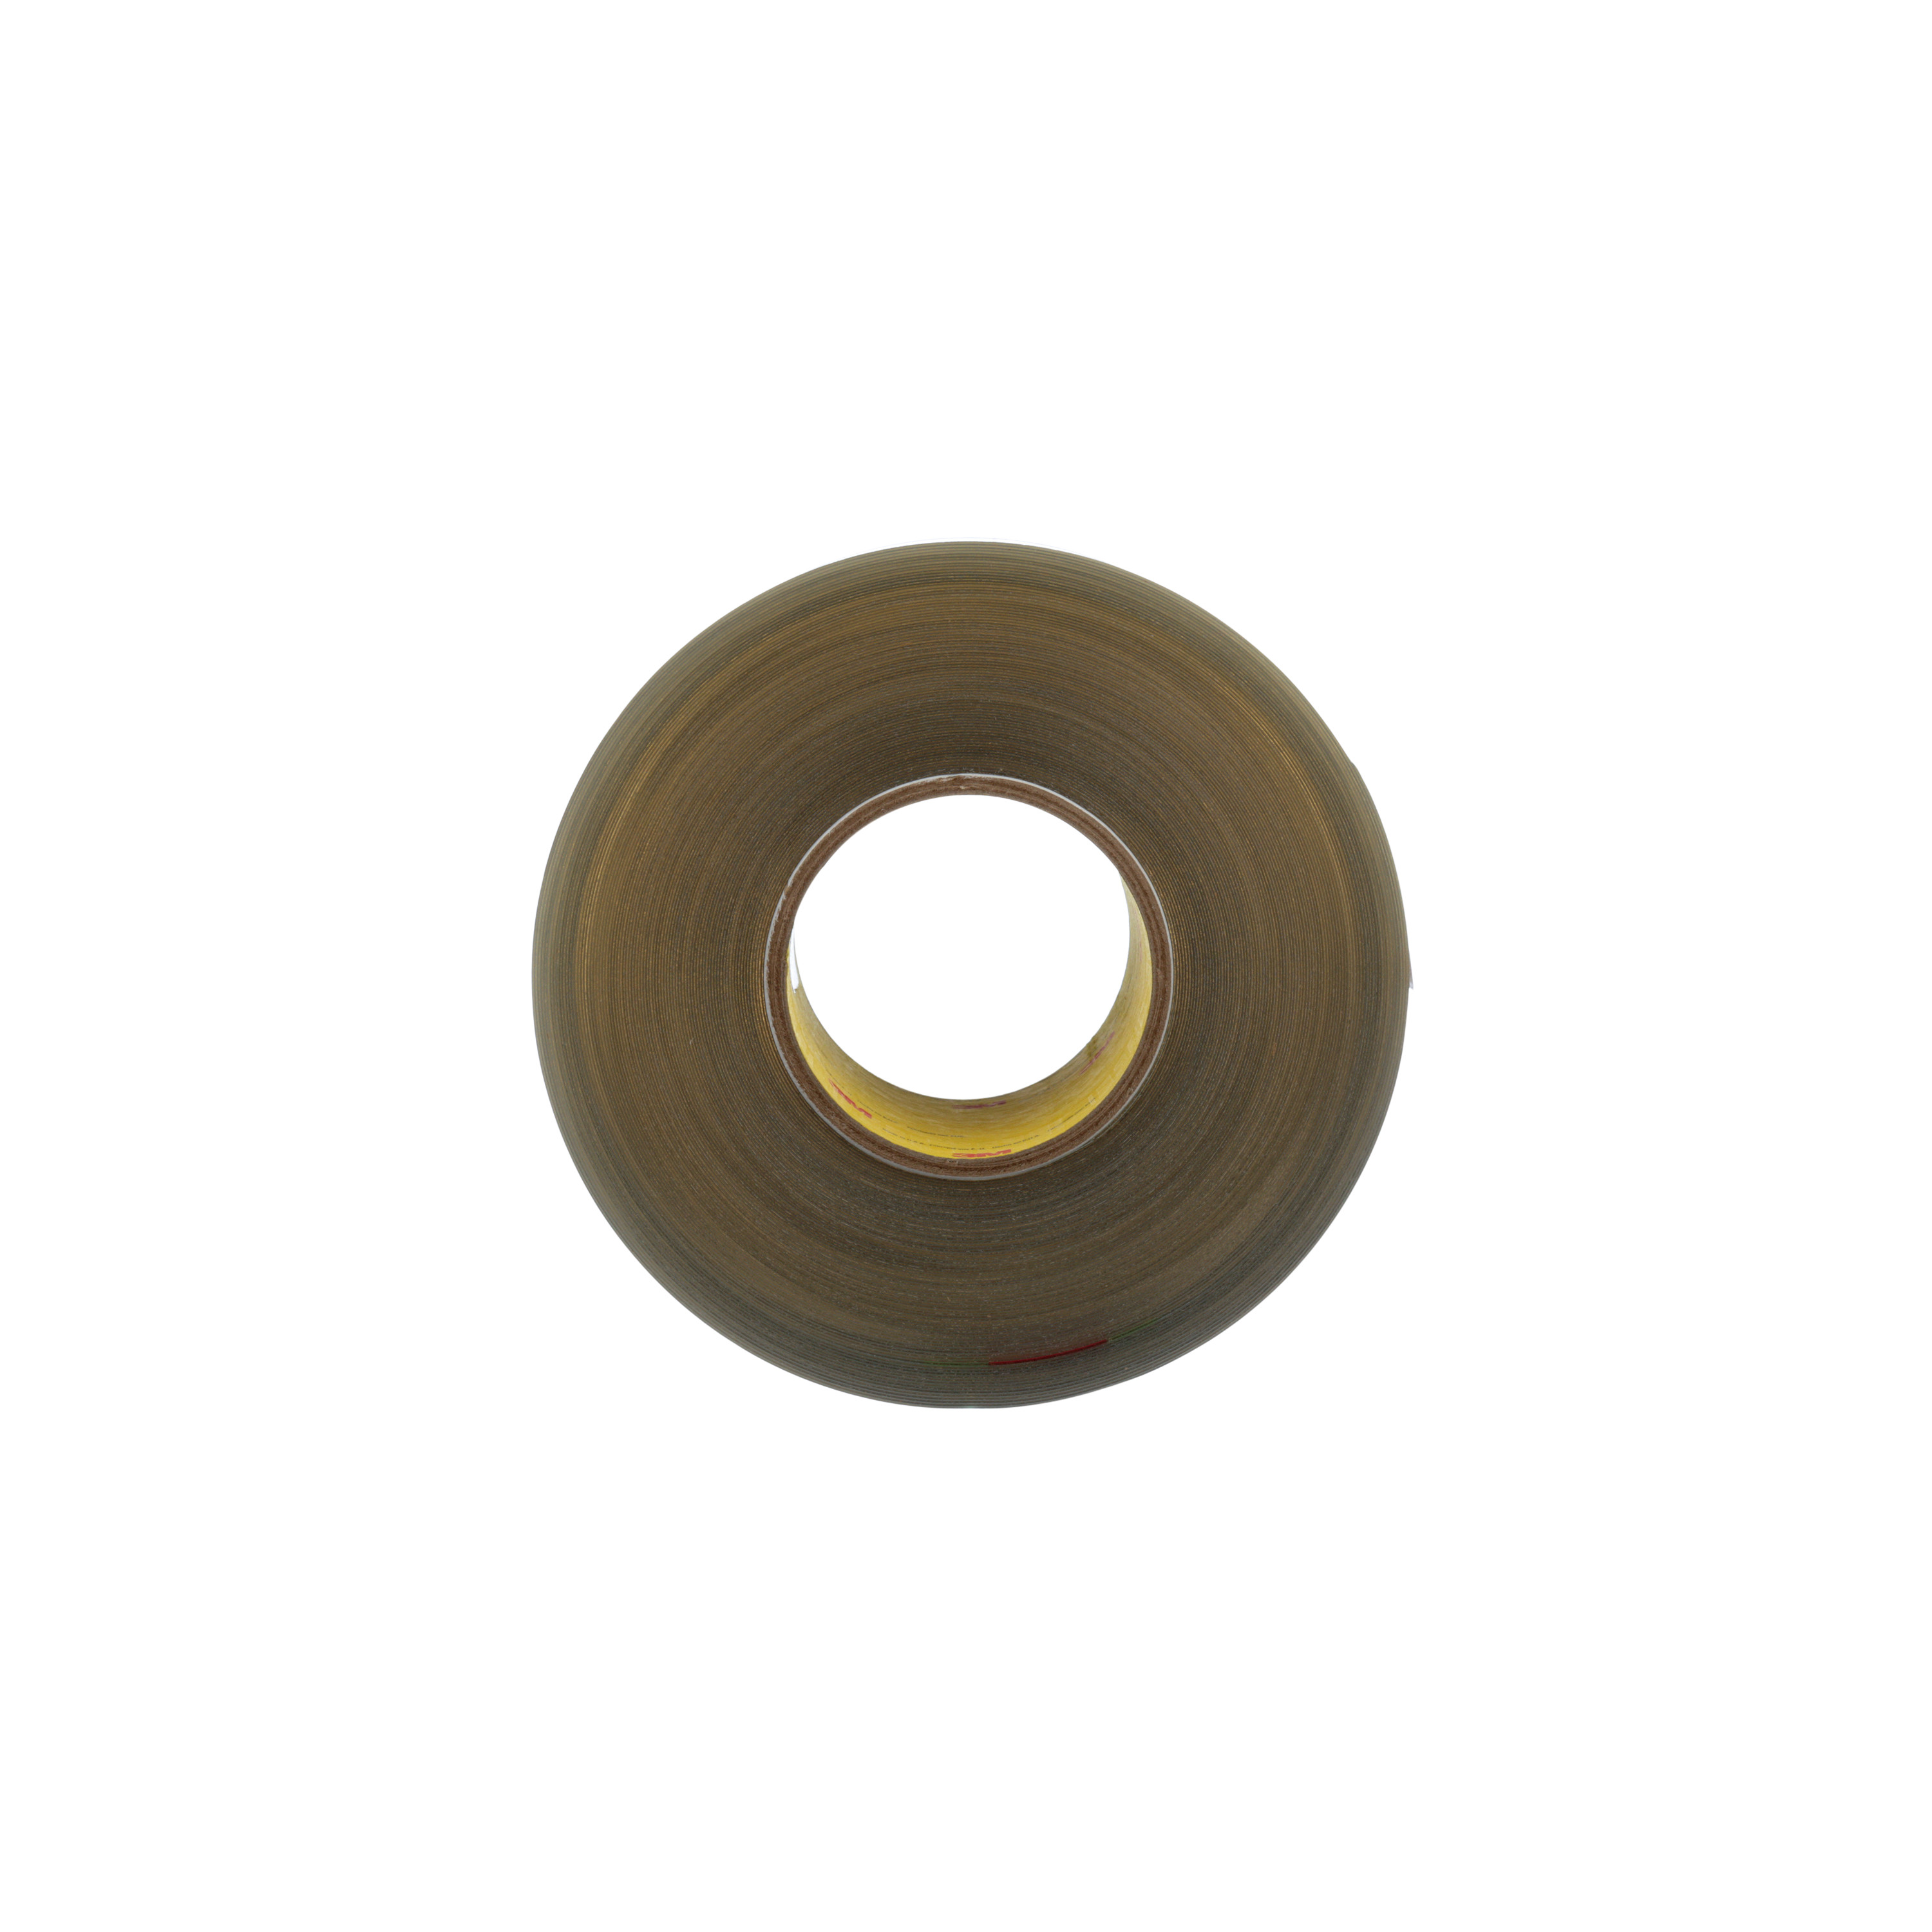 3M™ Polyurethane Protective Tape 8663DL, Transparent, 4 in x 3 yd, 1 Roll/Case, Sample